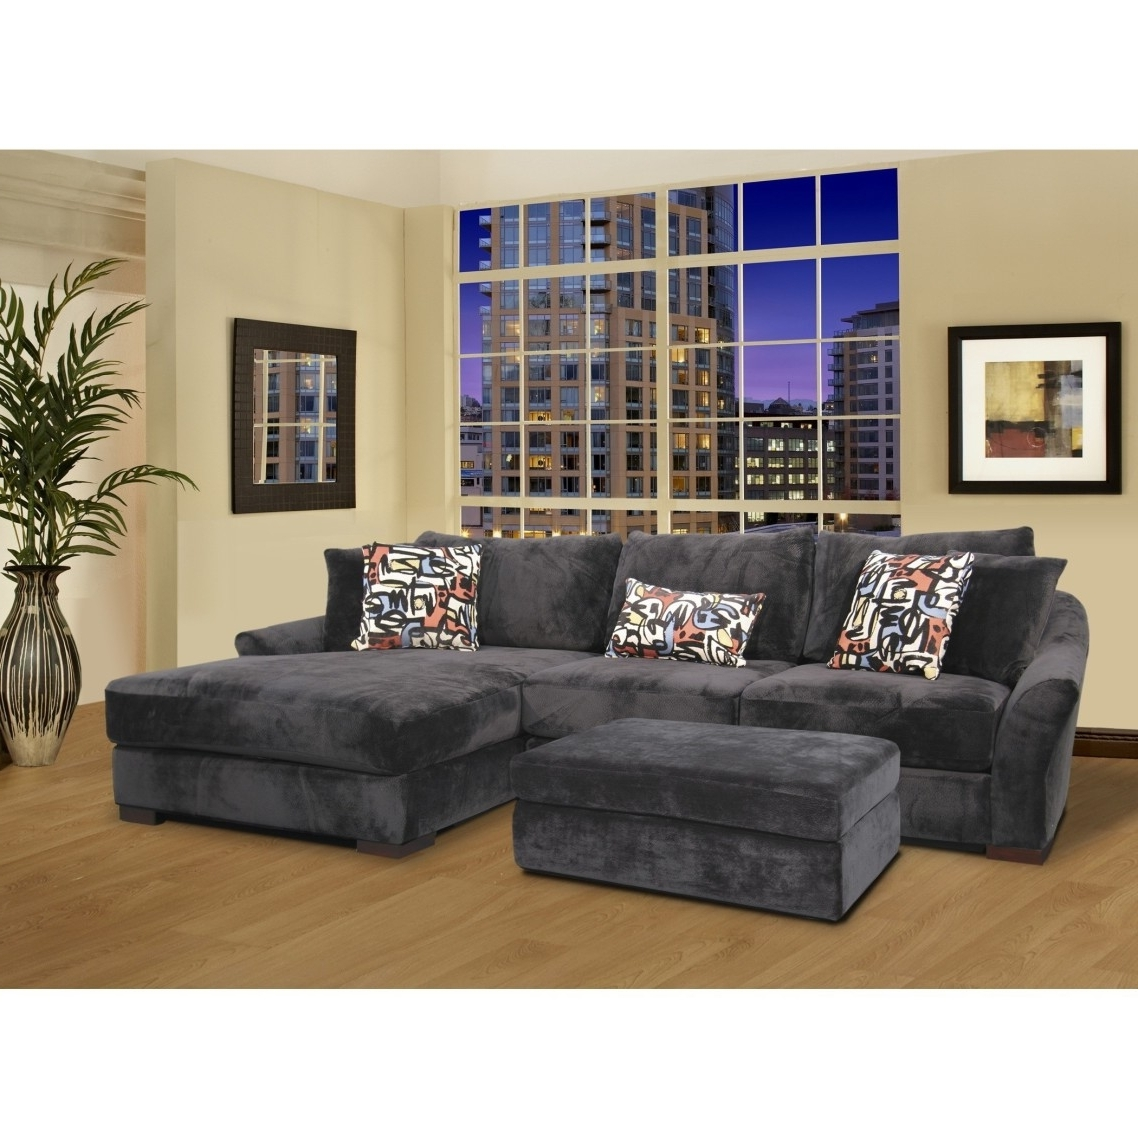 Gray Velvet Oversized Sectional Sleeper Sofa With Left Chaise For Trendy Oversized Sectional Sofas With Chaise (View 2 of 15)